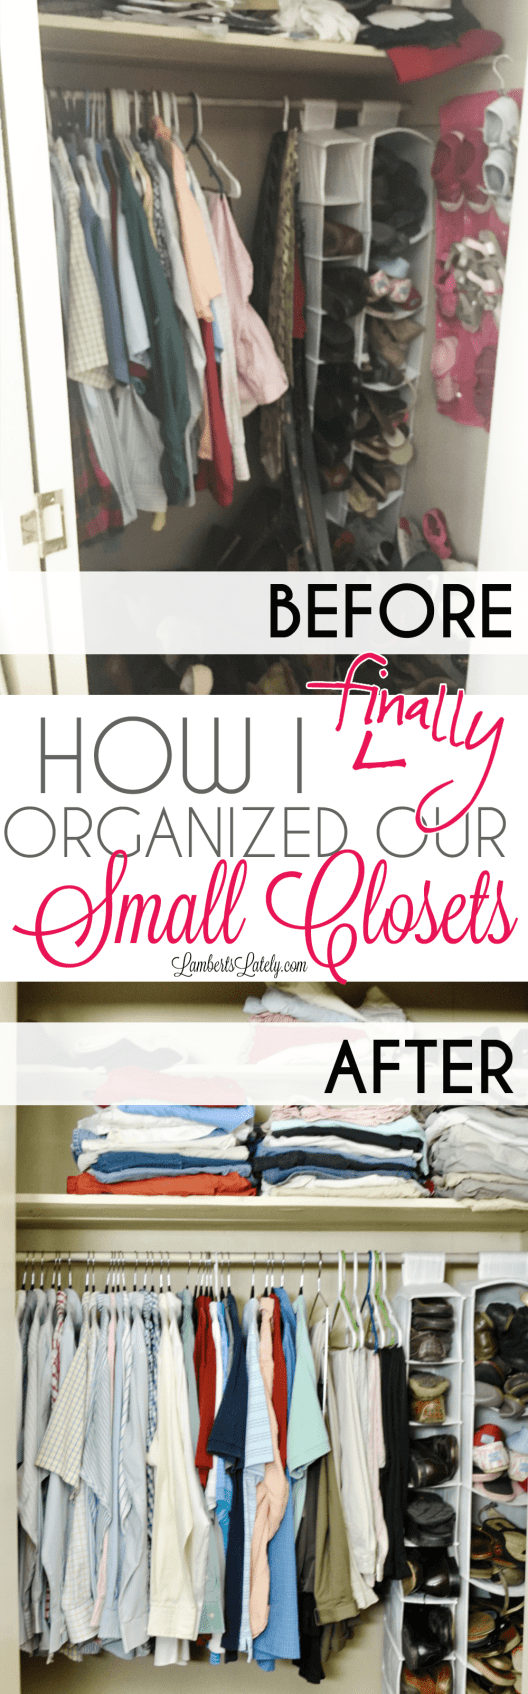 Small Closet Organization Tips and Tricks || Bedroom Organizing Hacks || Small Space Ideas DIY